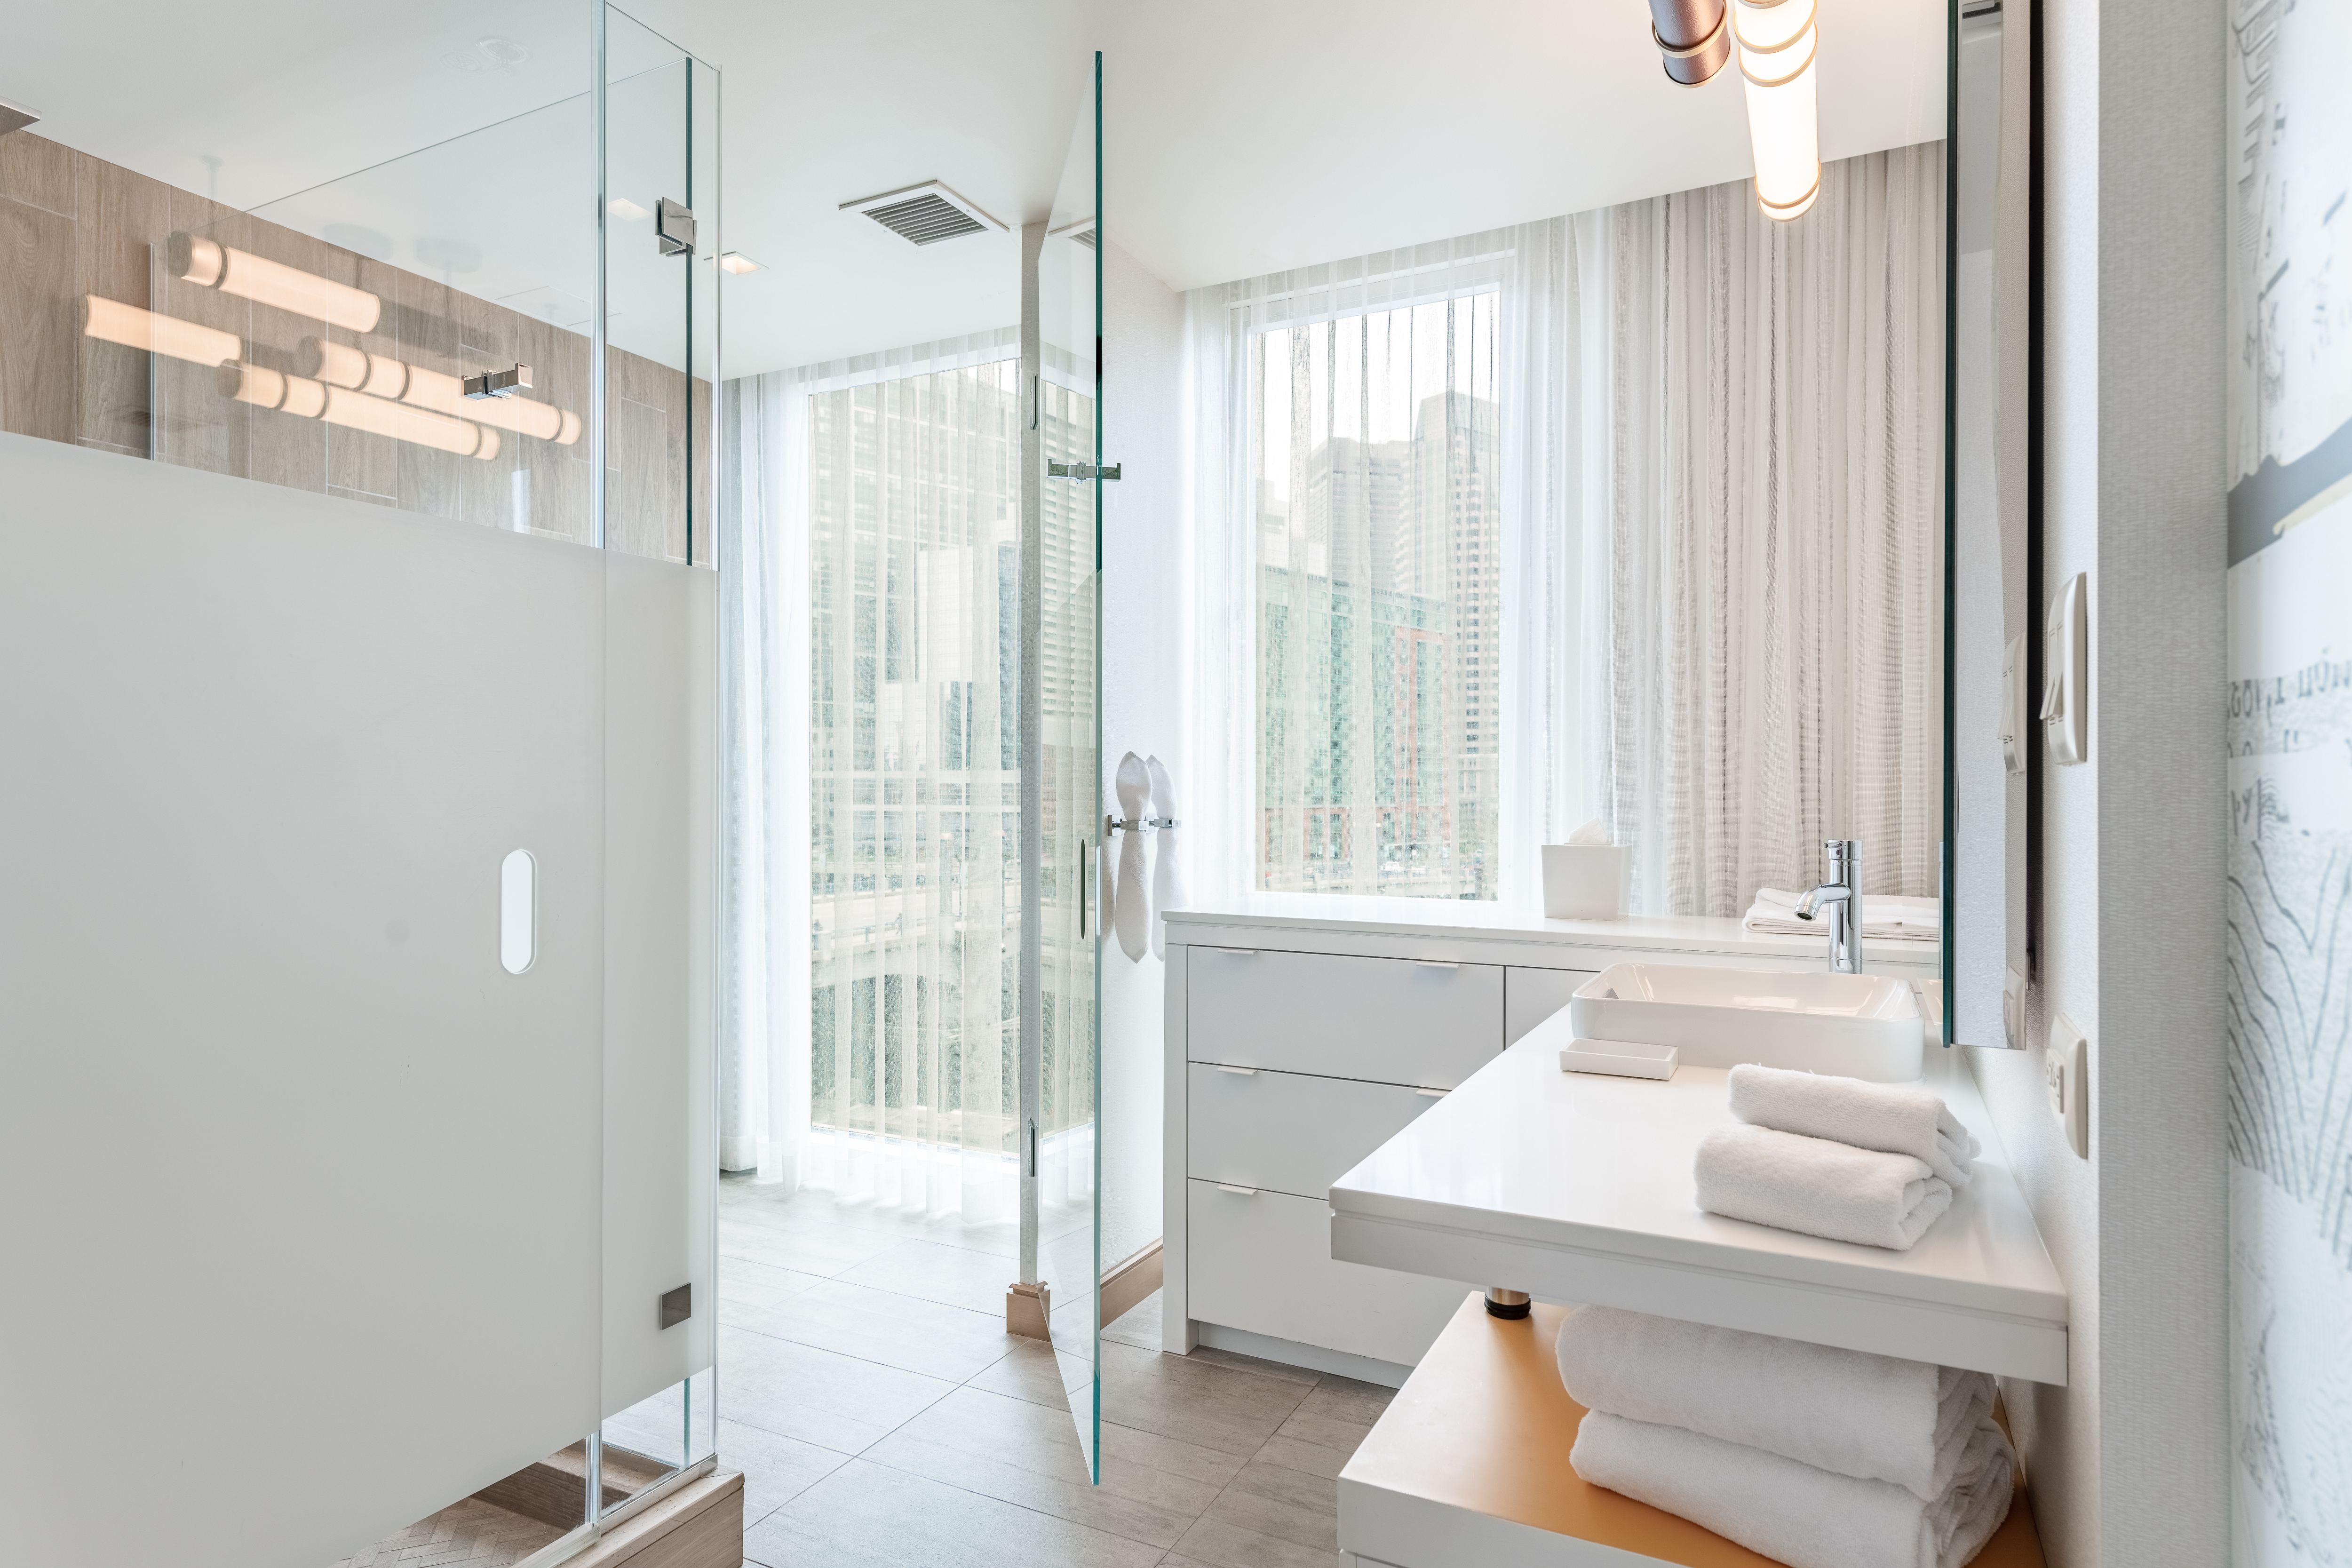 https://www.hotelsbyday.com/_data/default-hotel_image/5/26243/bathroon.jpg